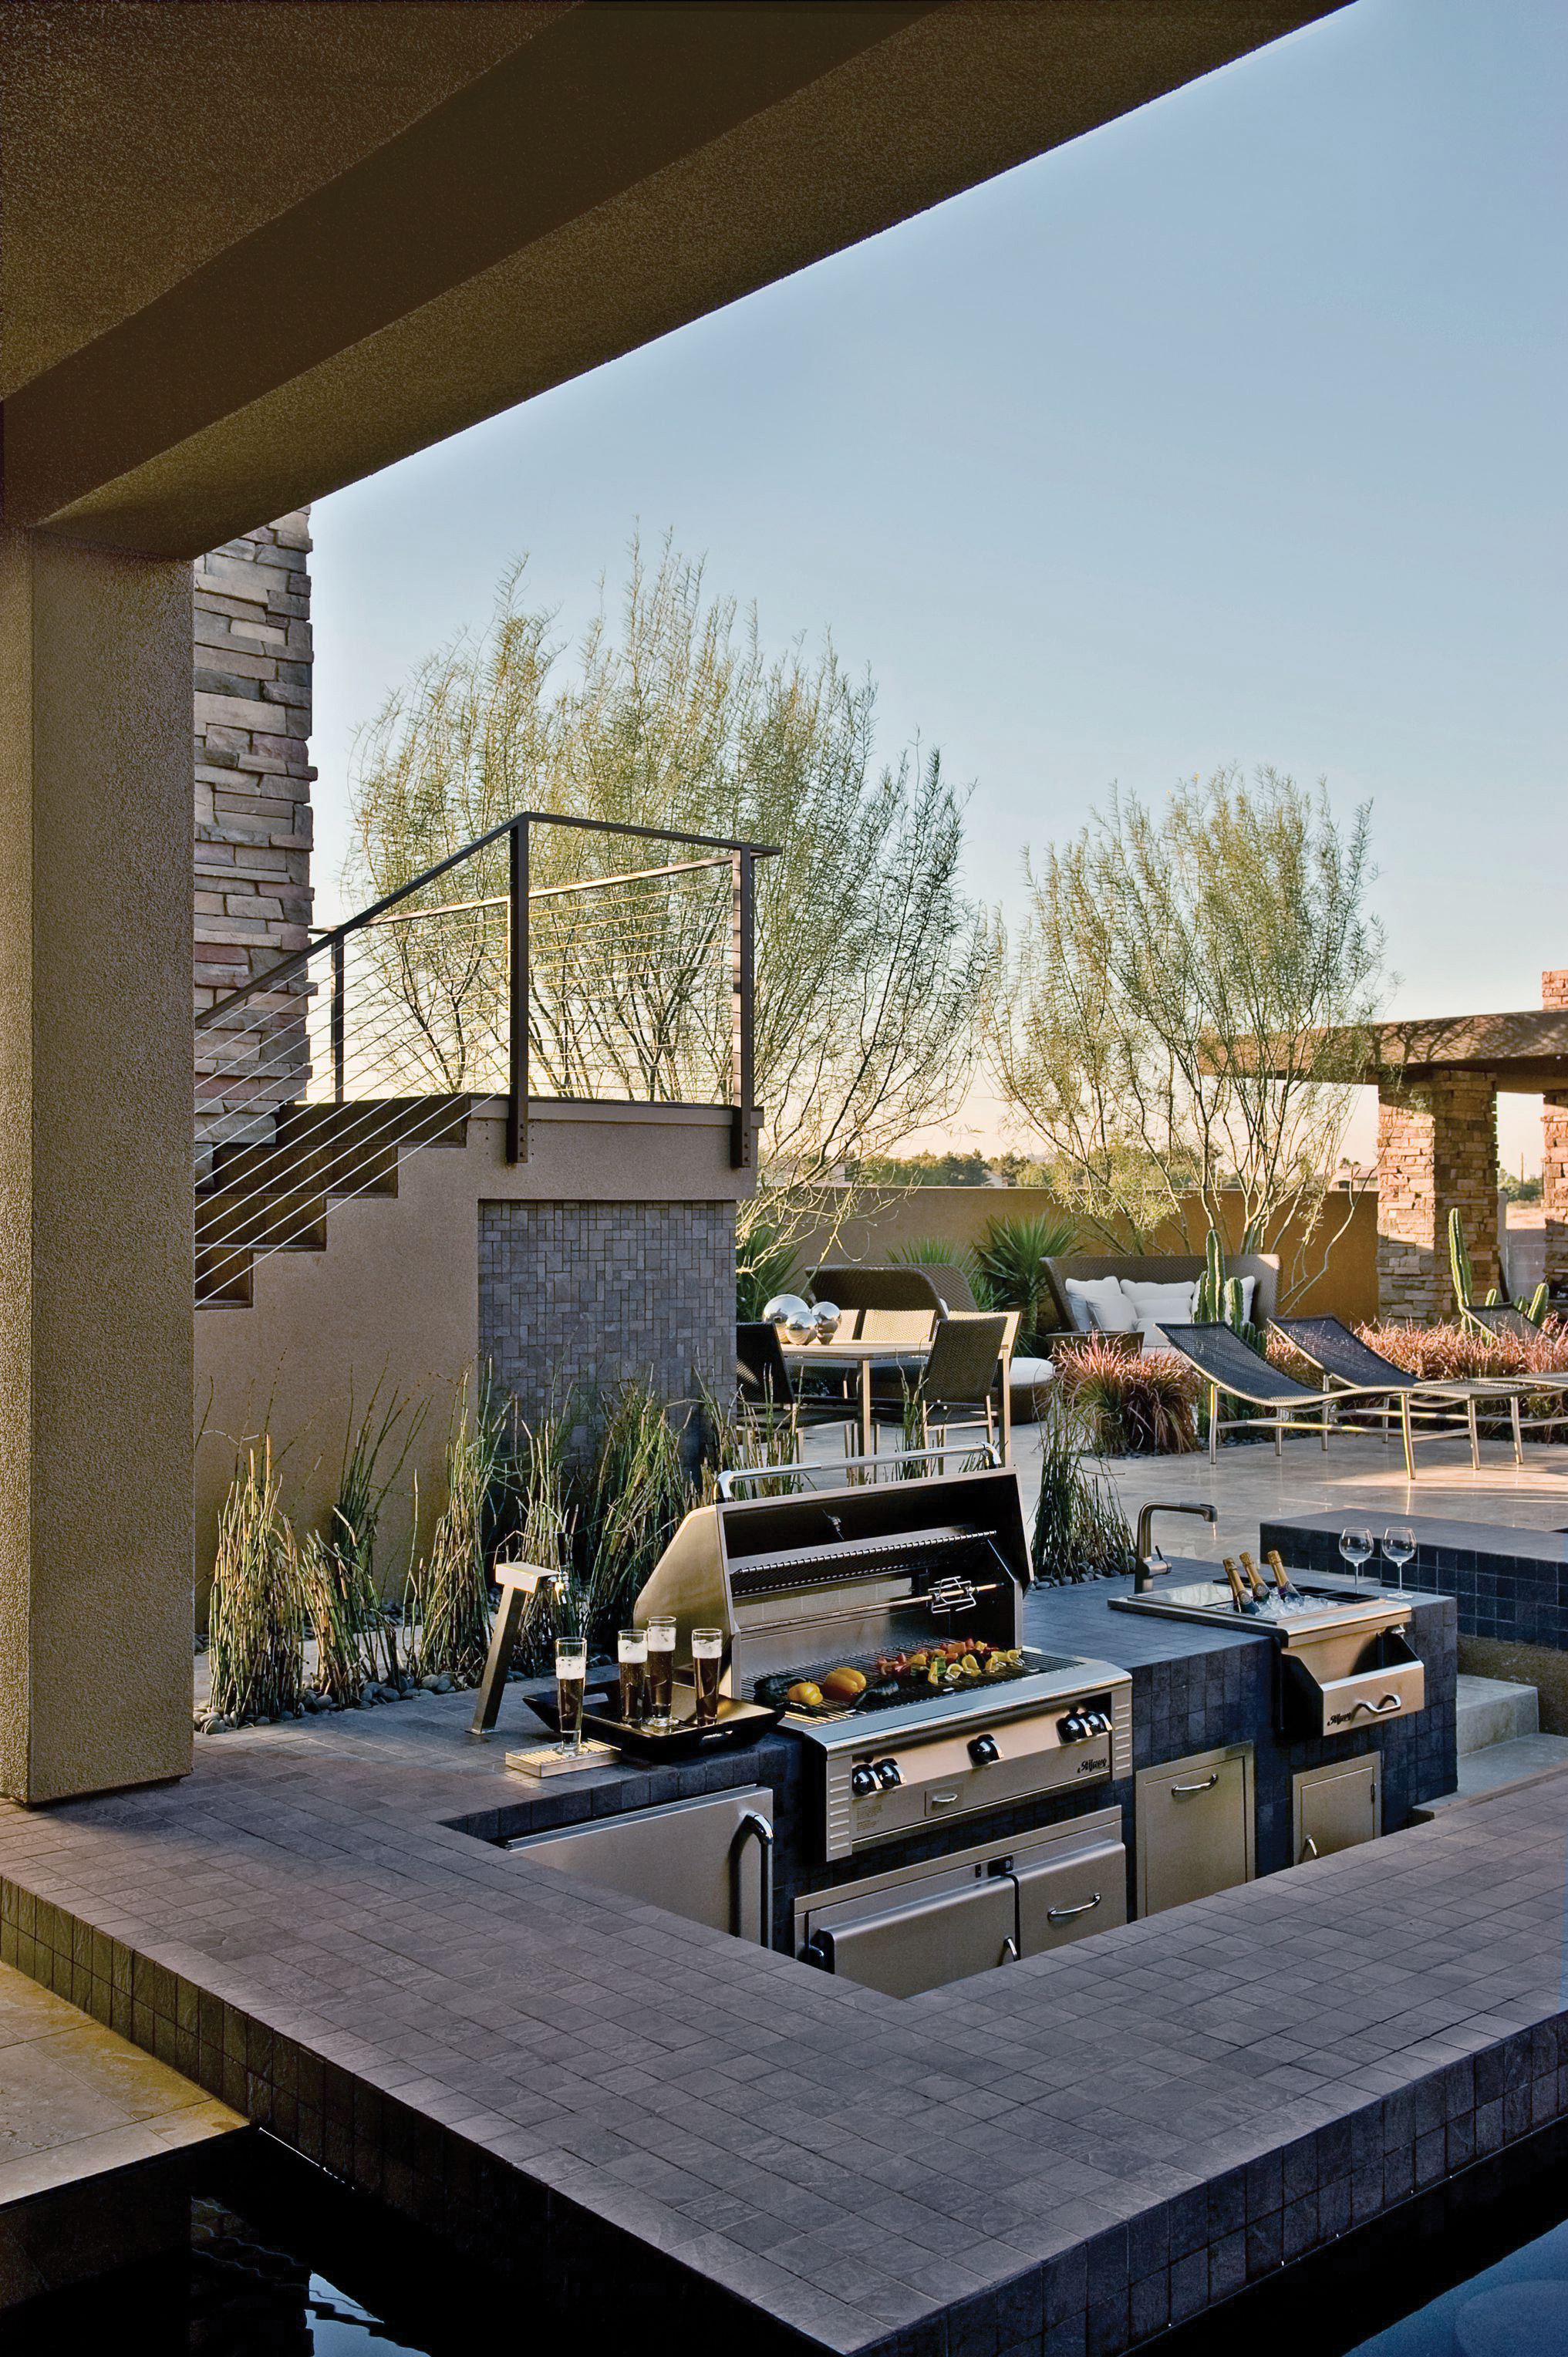 Barbecue Islands Las Vegas Outdoor Kitchen - Barbecue Grill Las Vegas